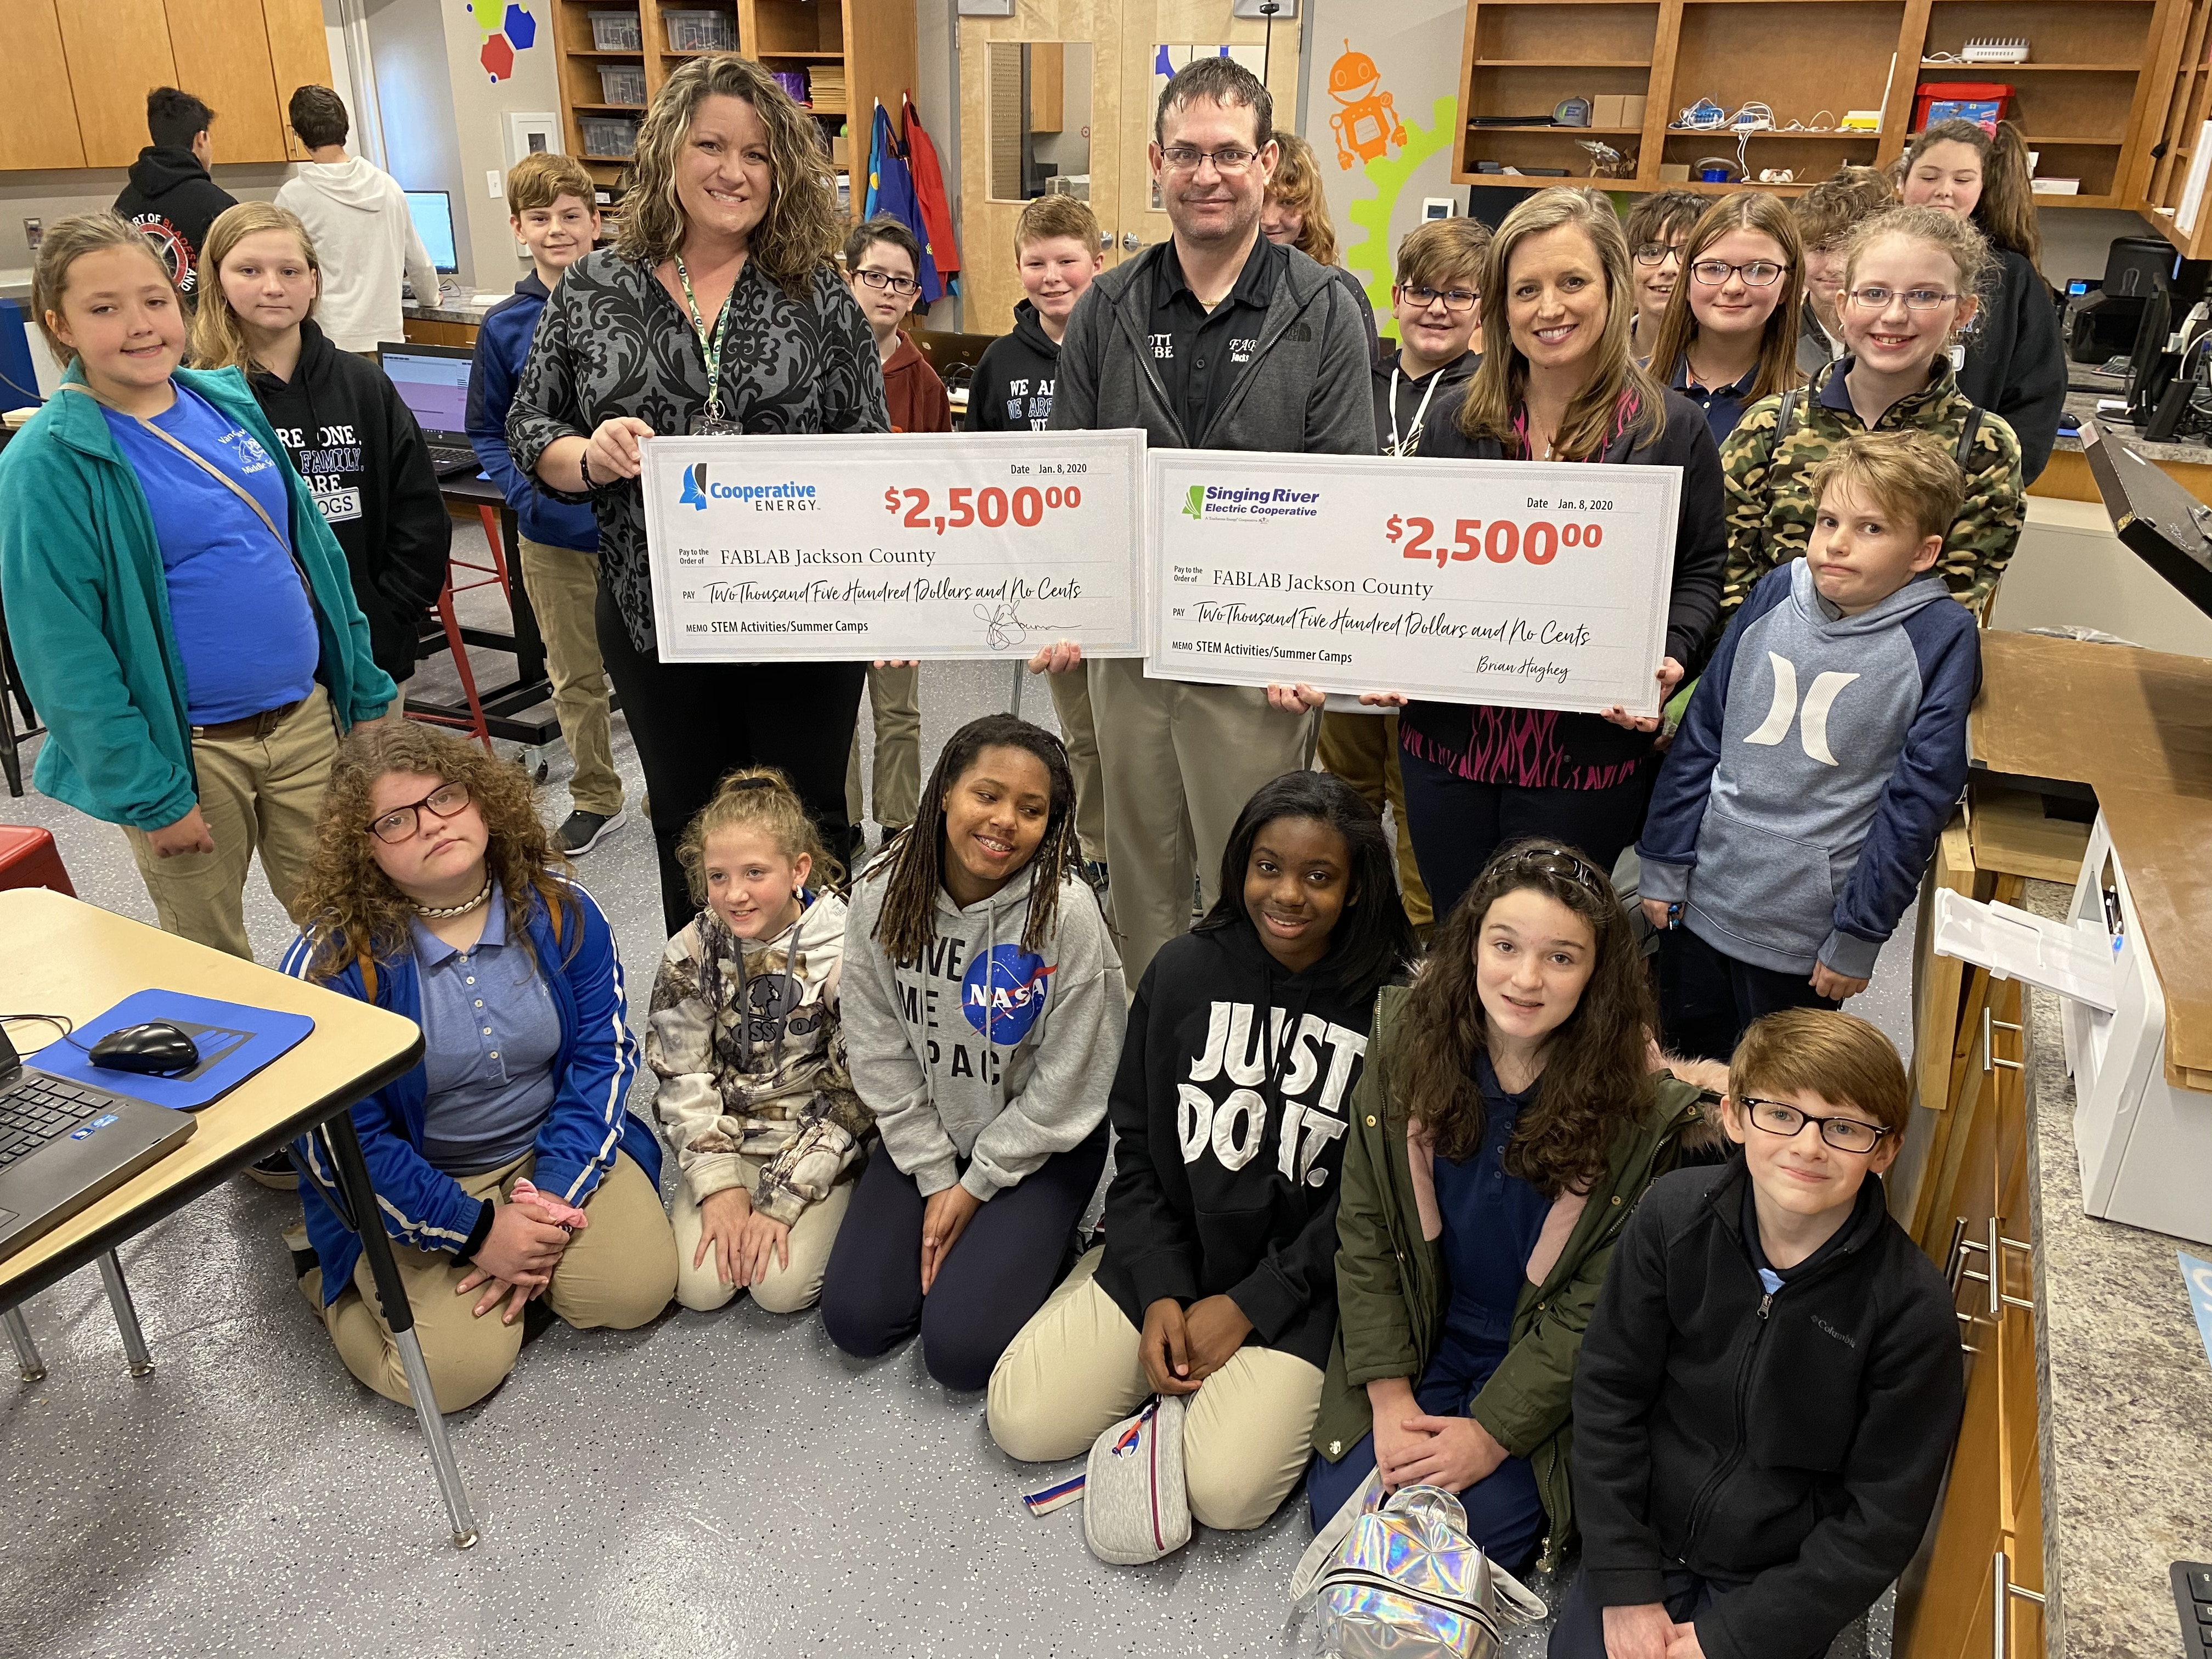 donation funds two FABLAB summer camps